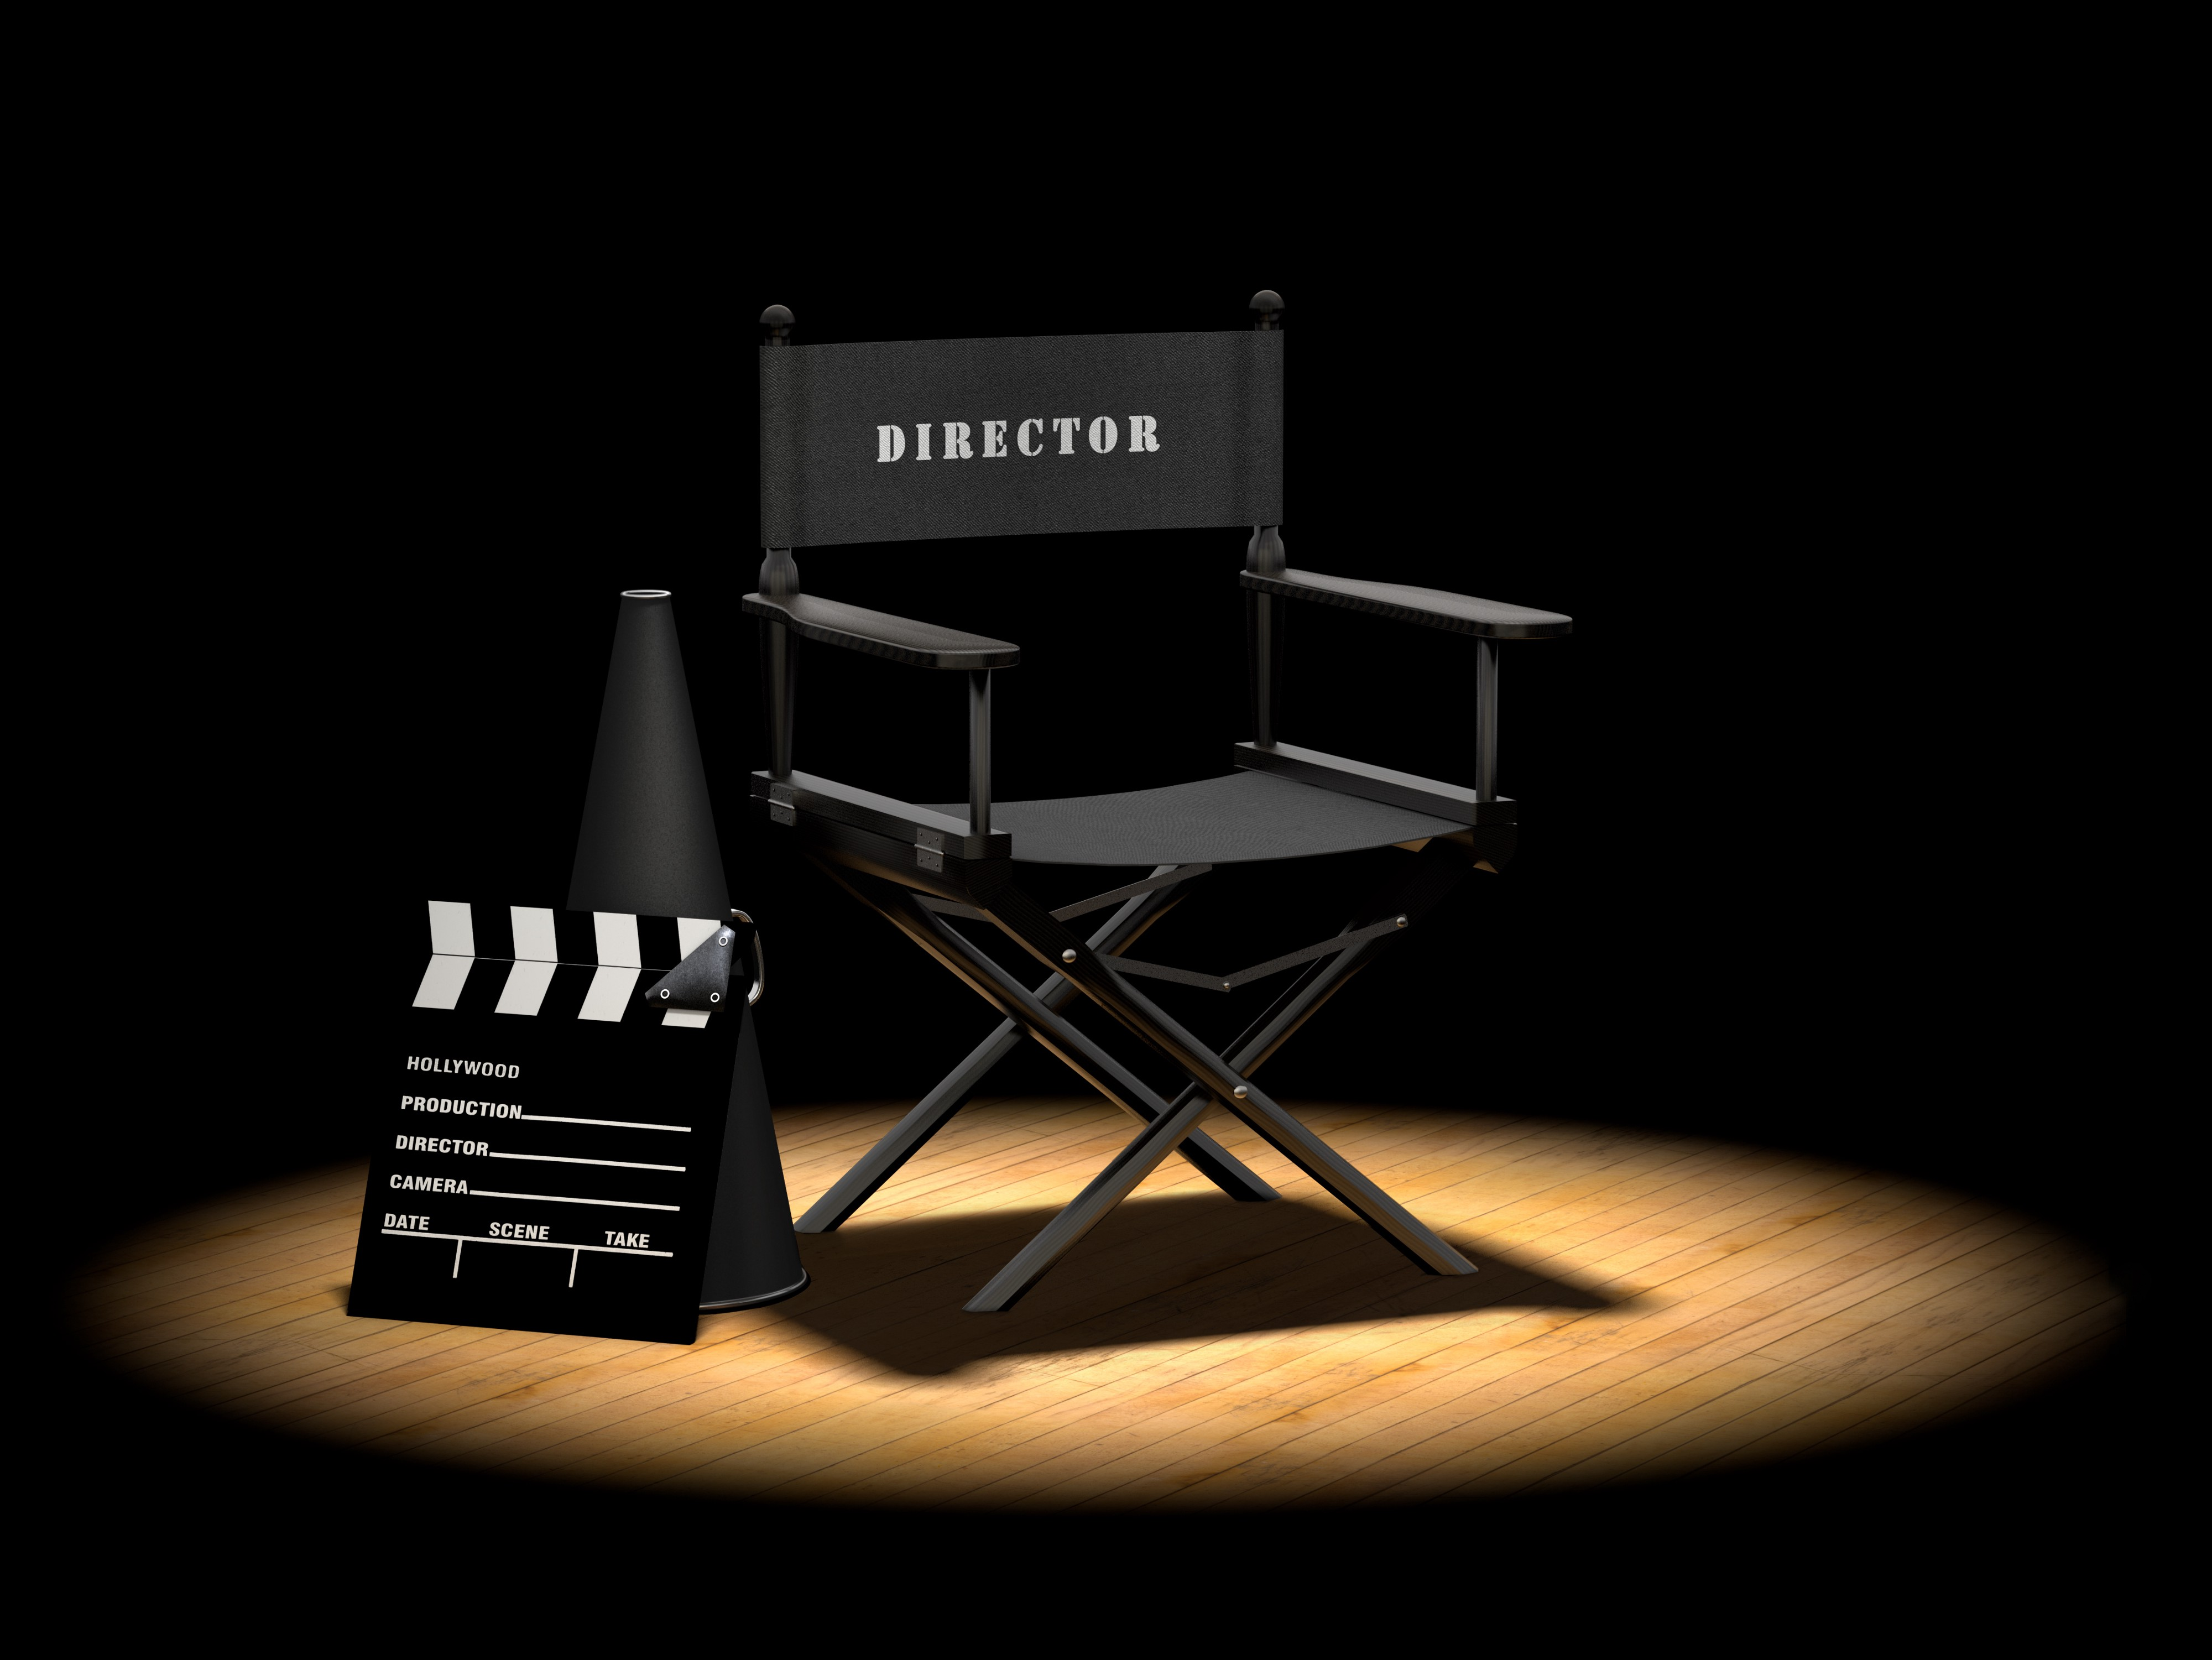 Black directors chair, camera slate, and megaphone in a spotlight on a wooden floor